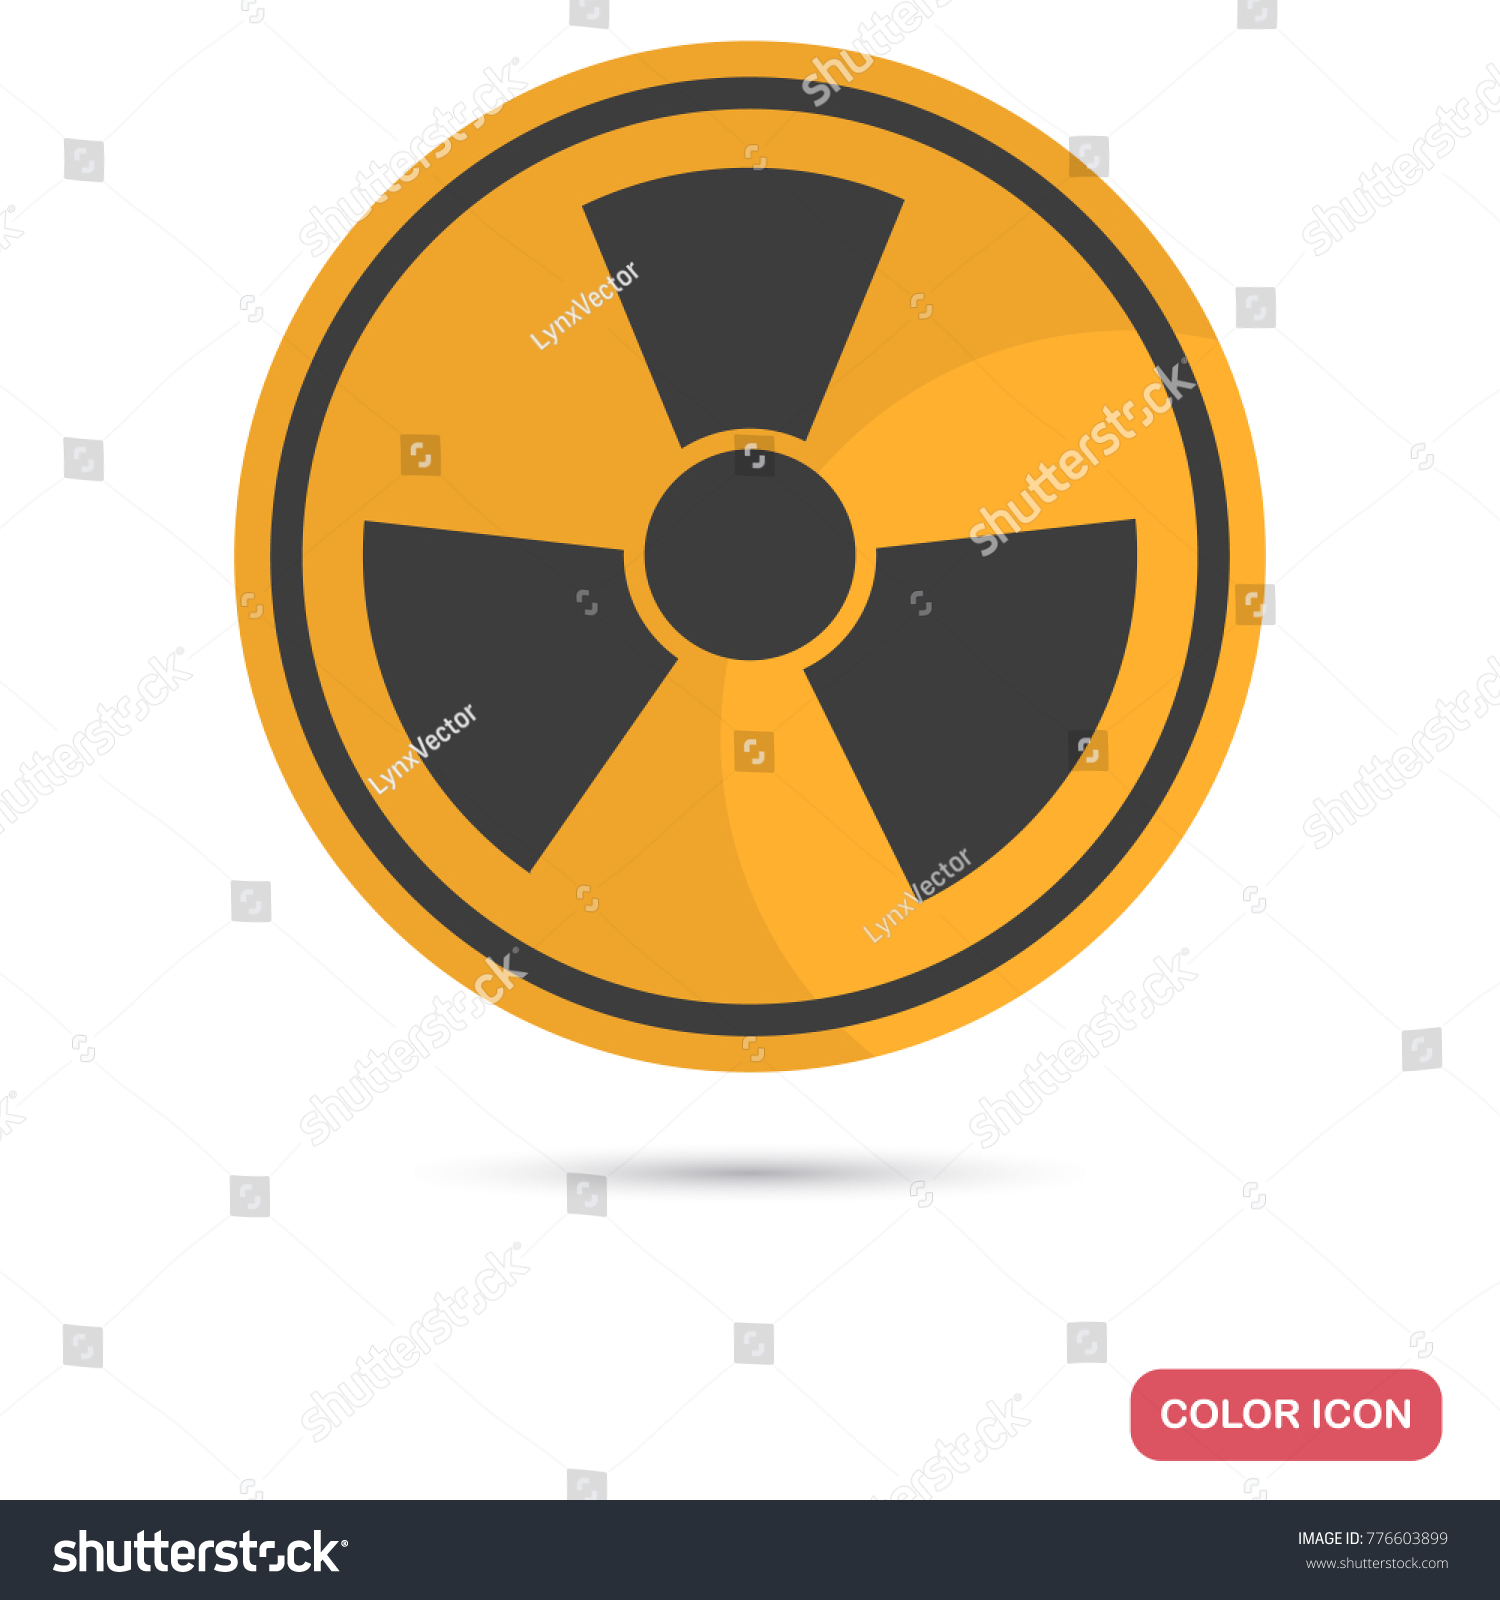 Sign toxic waste color flat icon stock vector 776603899 shutterstock sign of toxic waste color flat icon for web and mobile design biocorpaavc